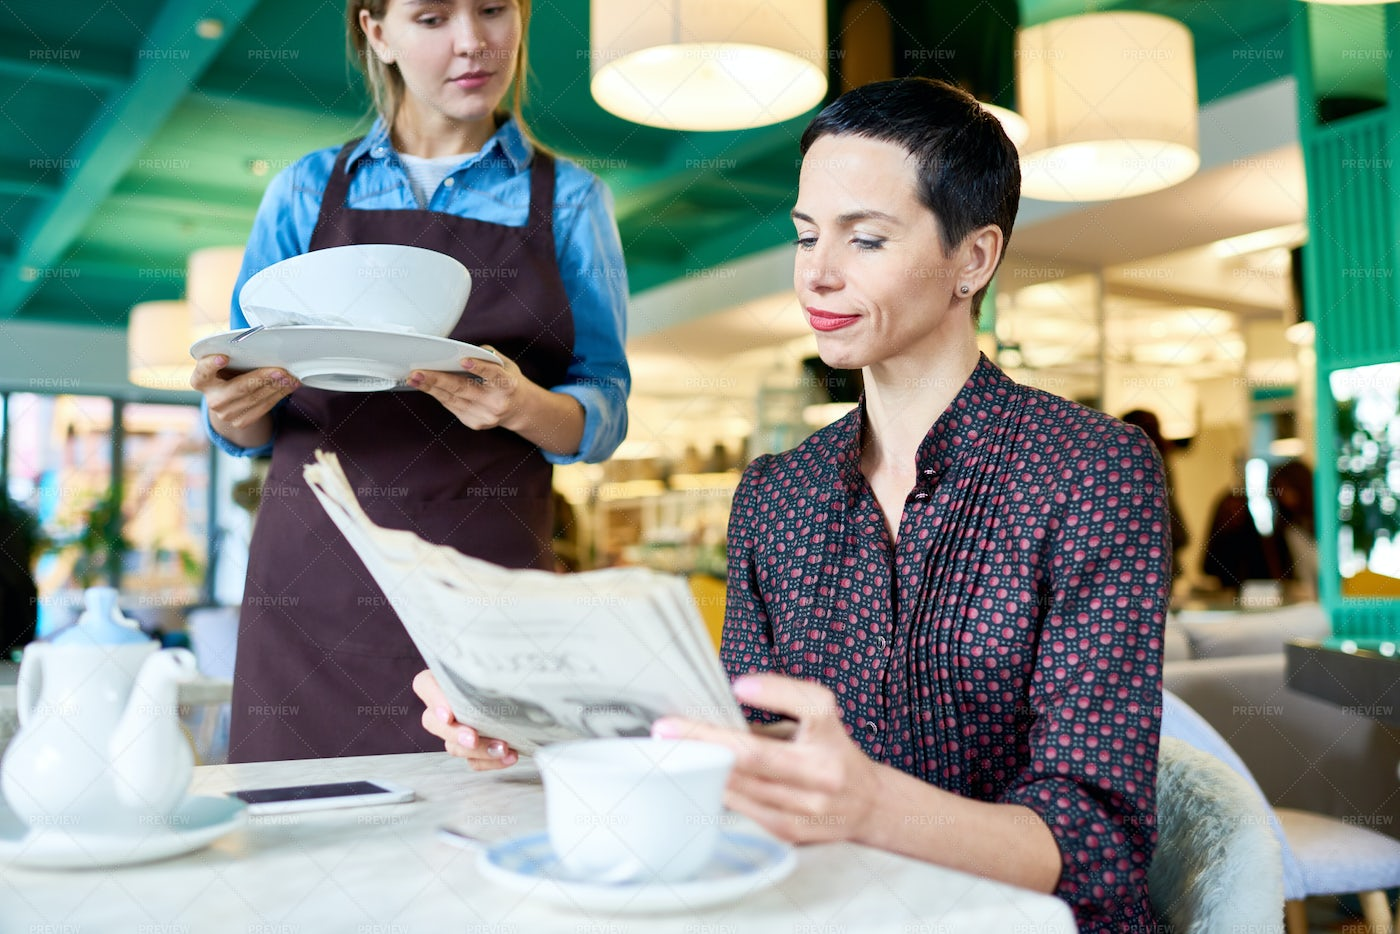 Elegant Woman Waiting For Food In...: Stock Photos